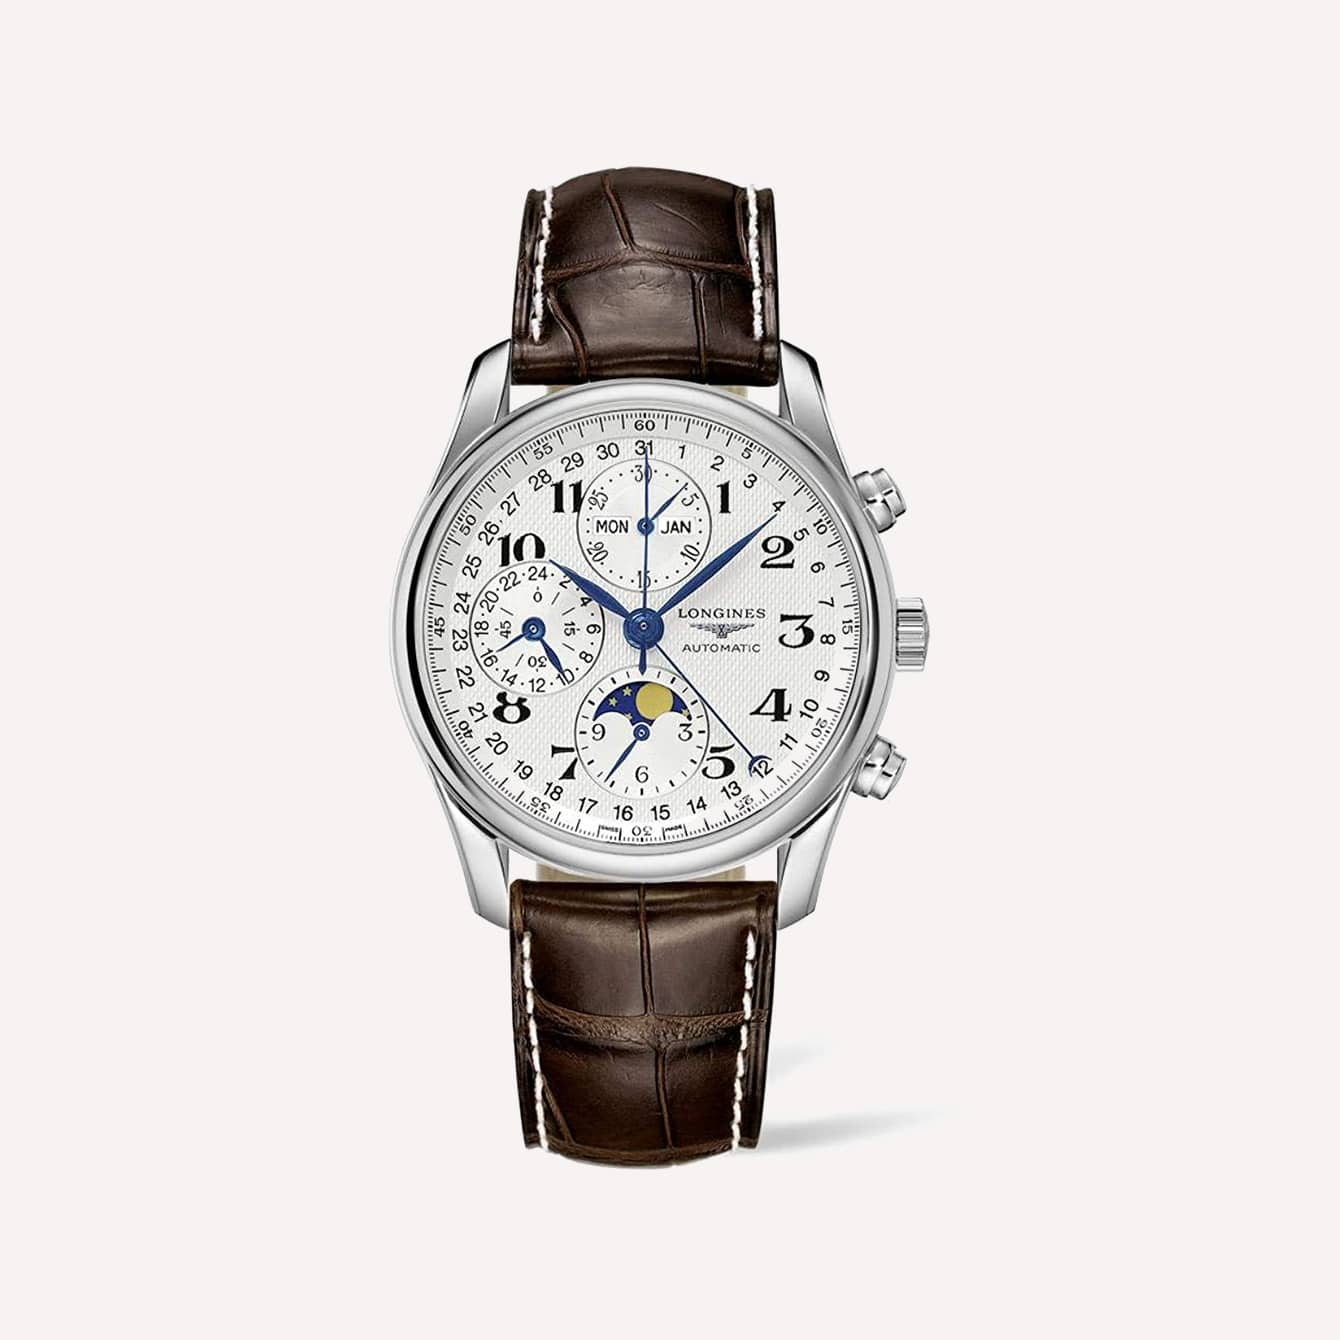 Leaf or Feuille Hands Longines Mens Watches Master Collection L2.673.4.78.3 WW